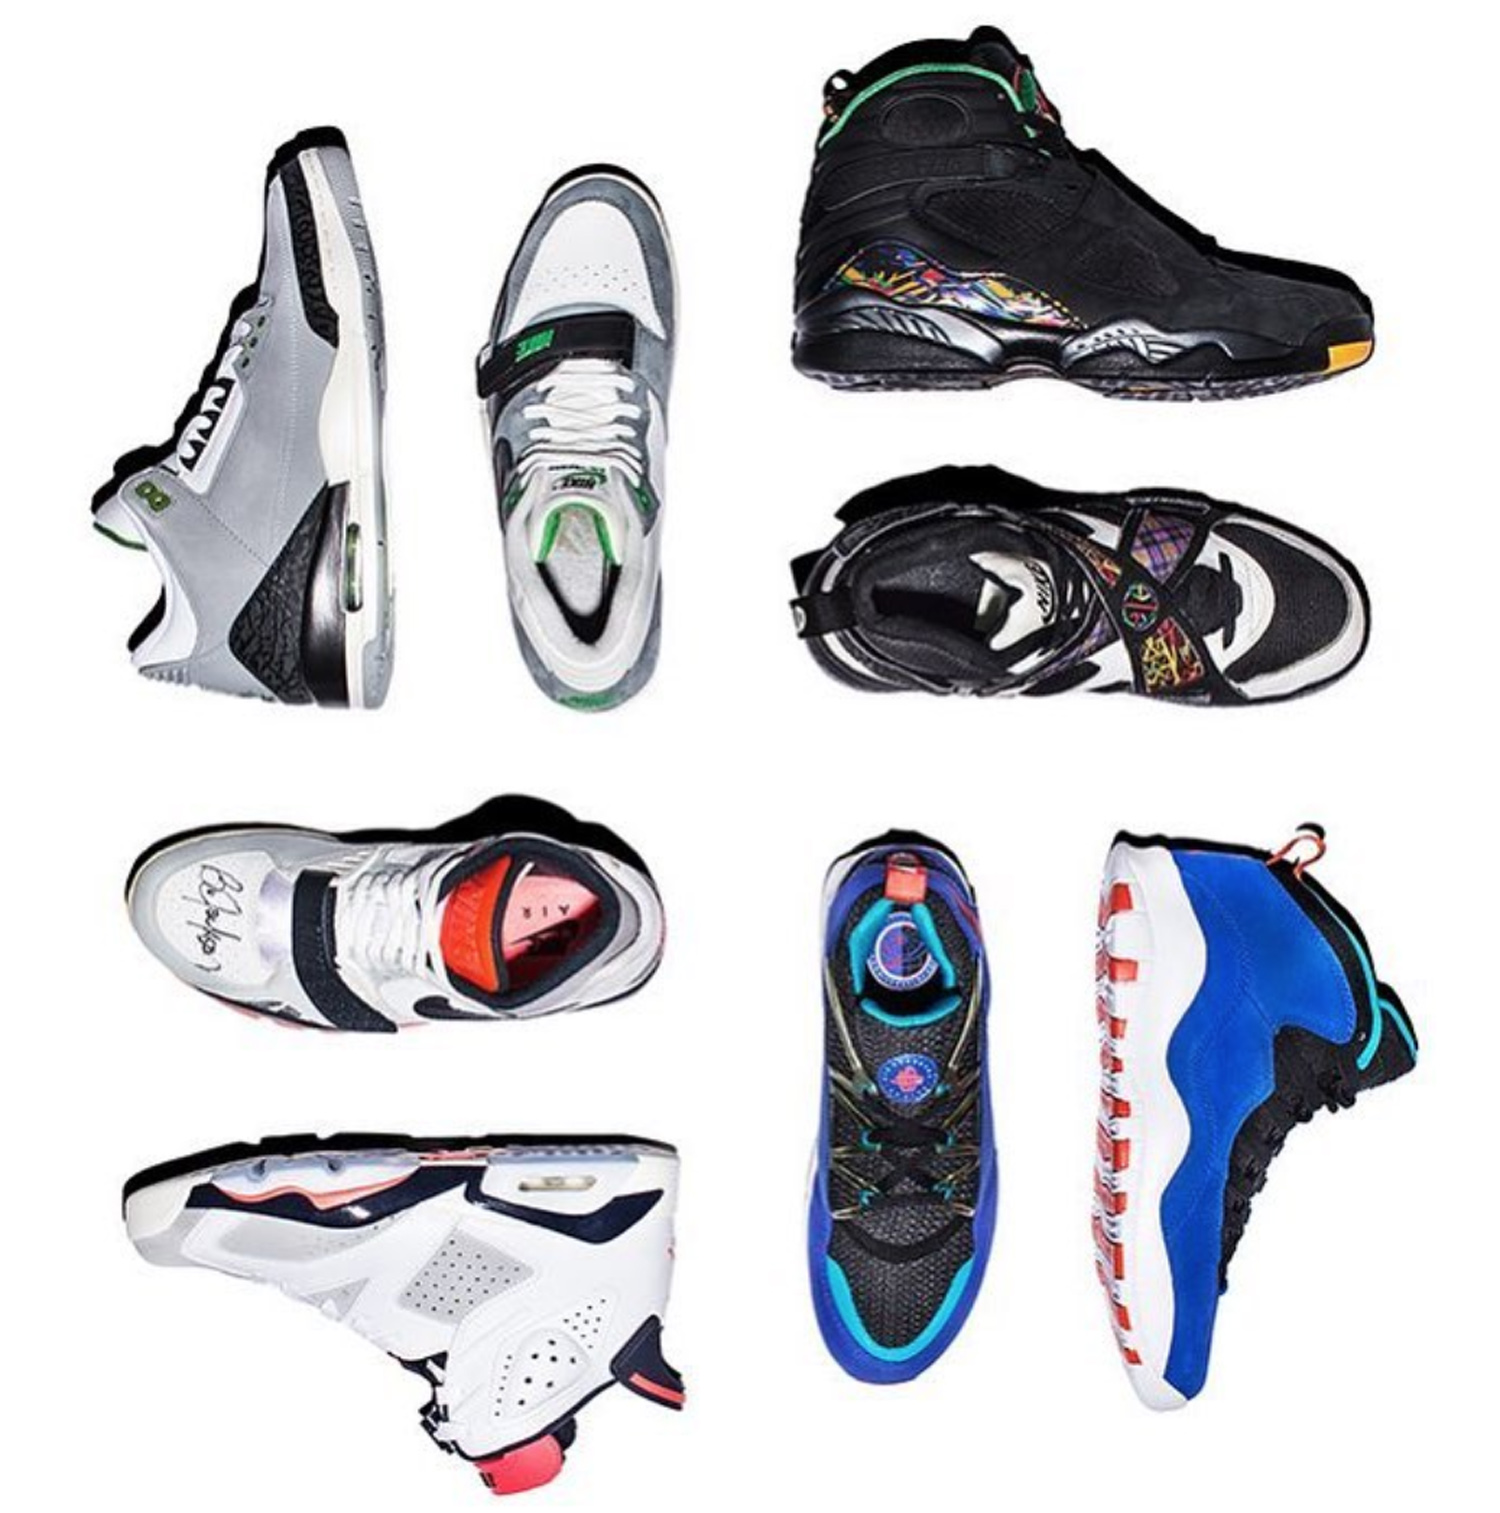 new arrival 2c44a 6158c Jordan Brand Draws Inspiration From Some of Tinker ...